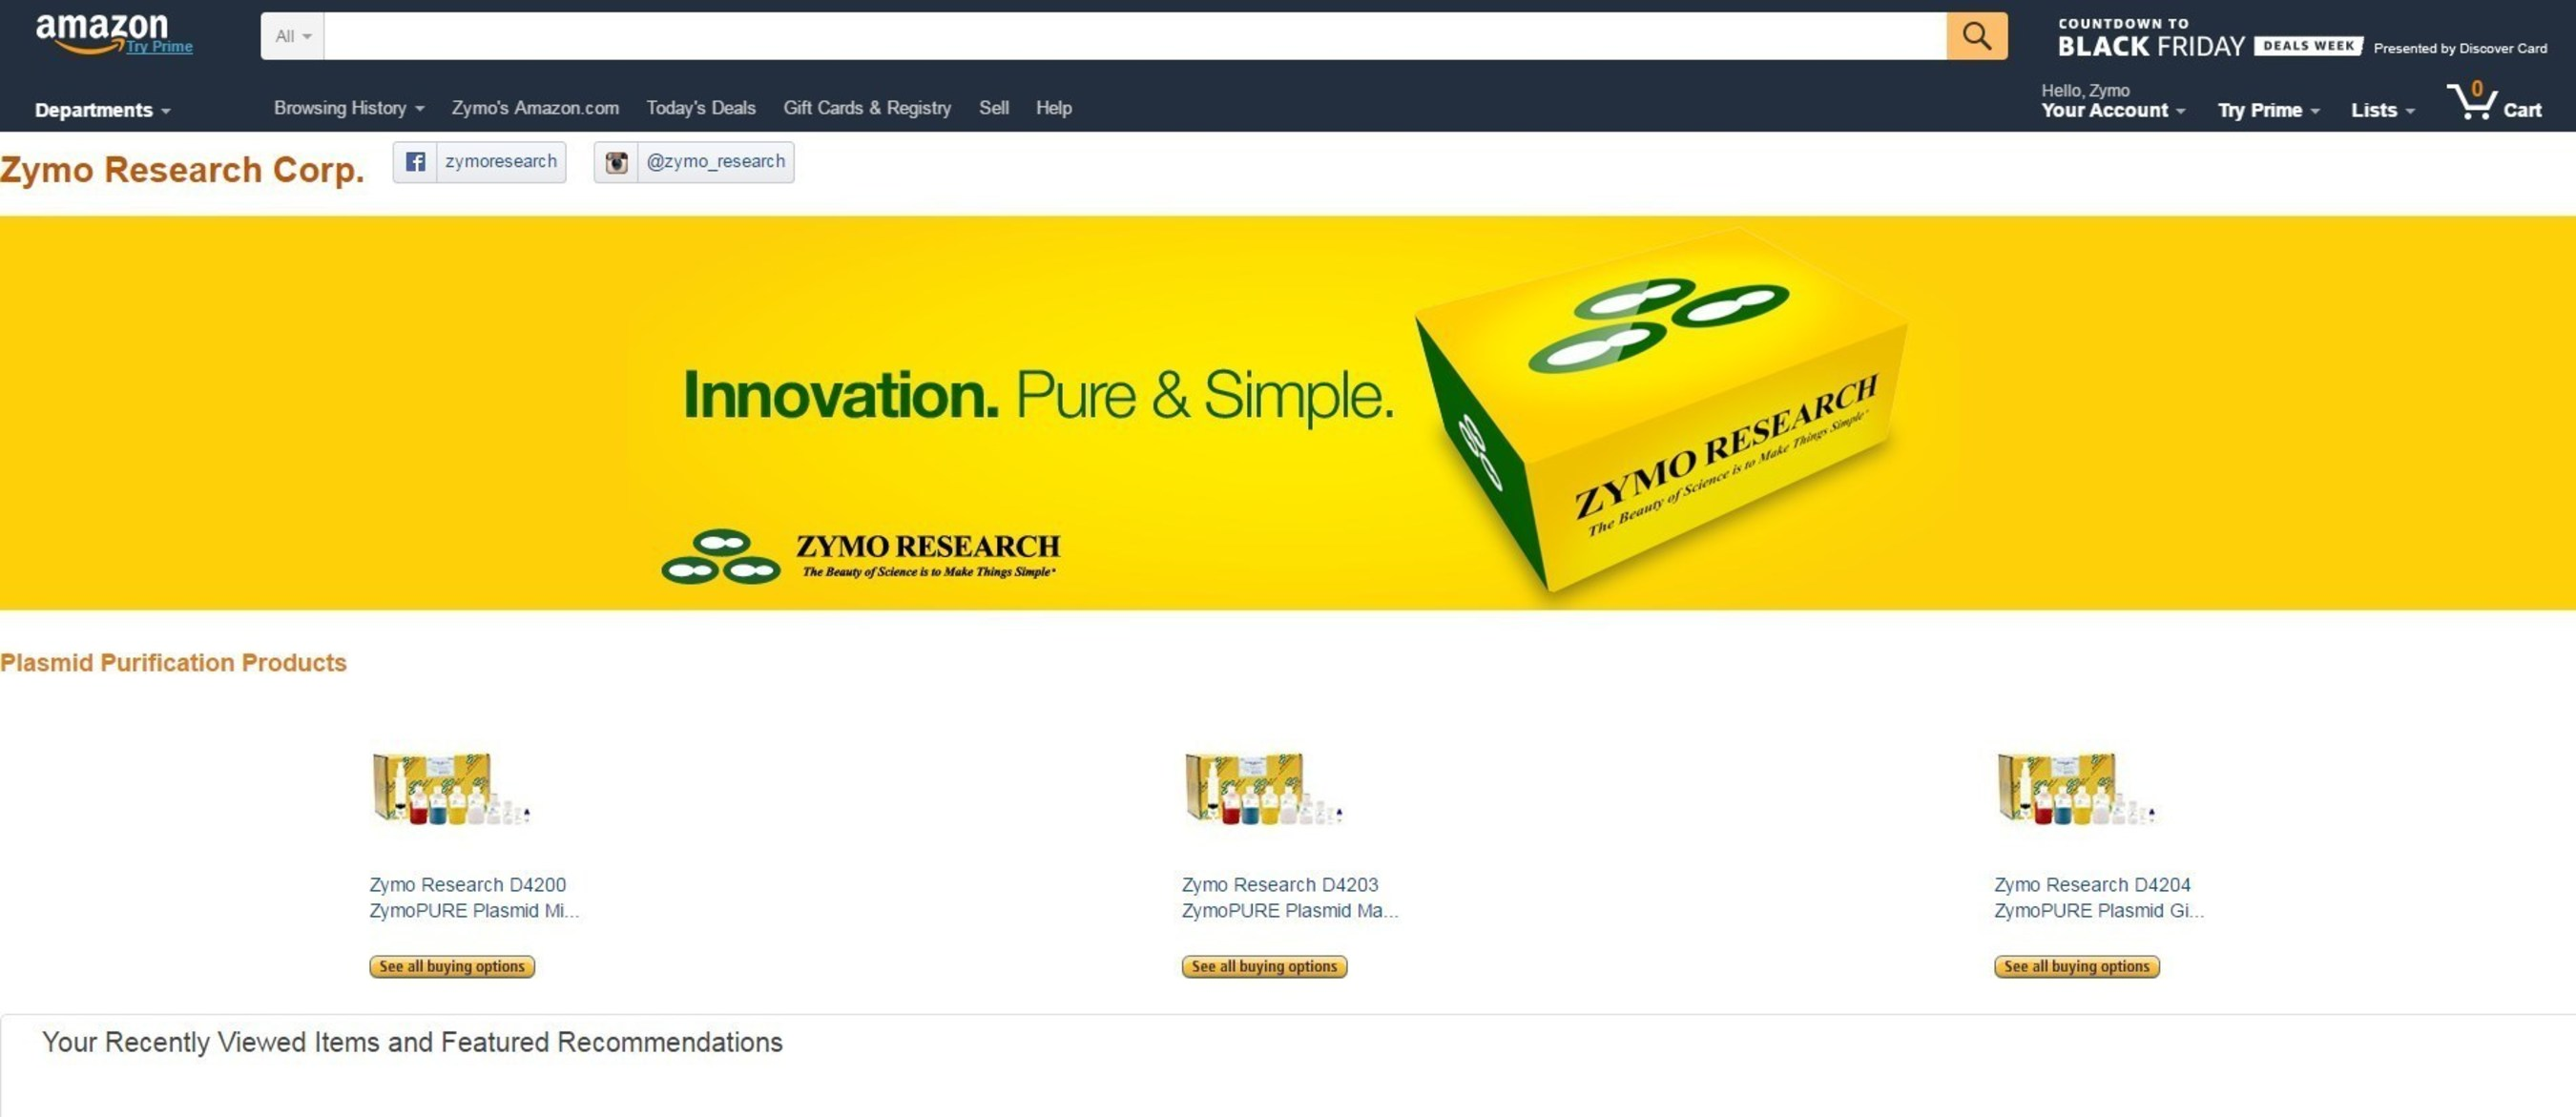 Zymo Research will be selling their most popular nucleic acid purification products through Amazon Business.